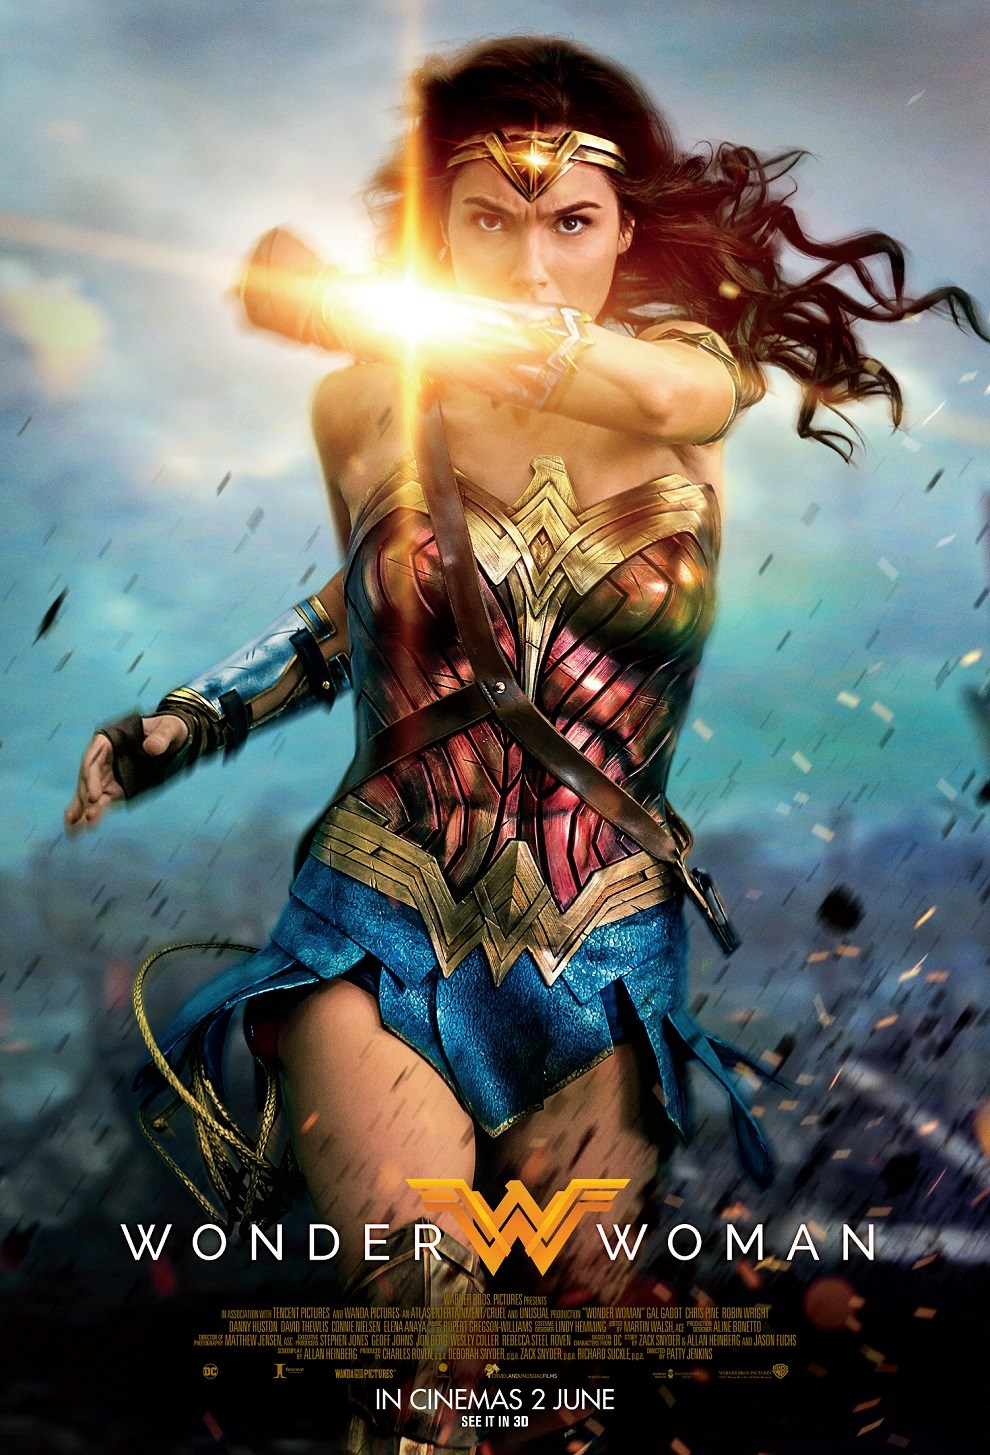 WONDER WOMAN now showing at Shelly Centre